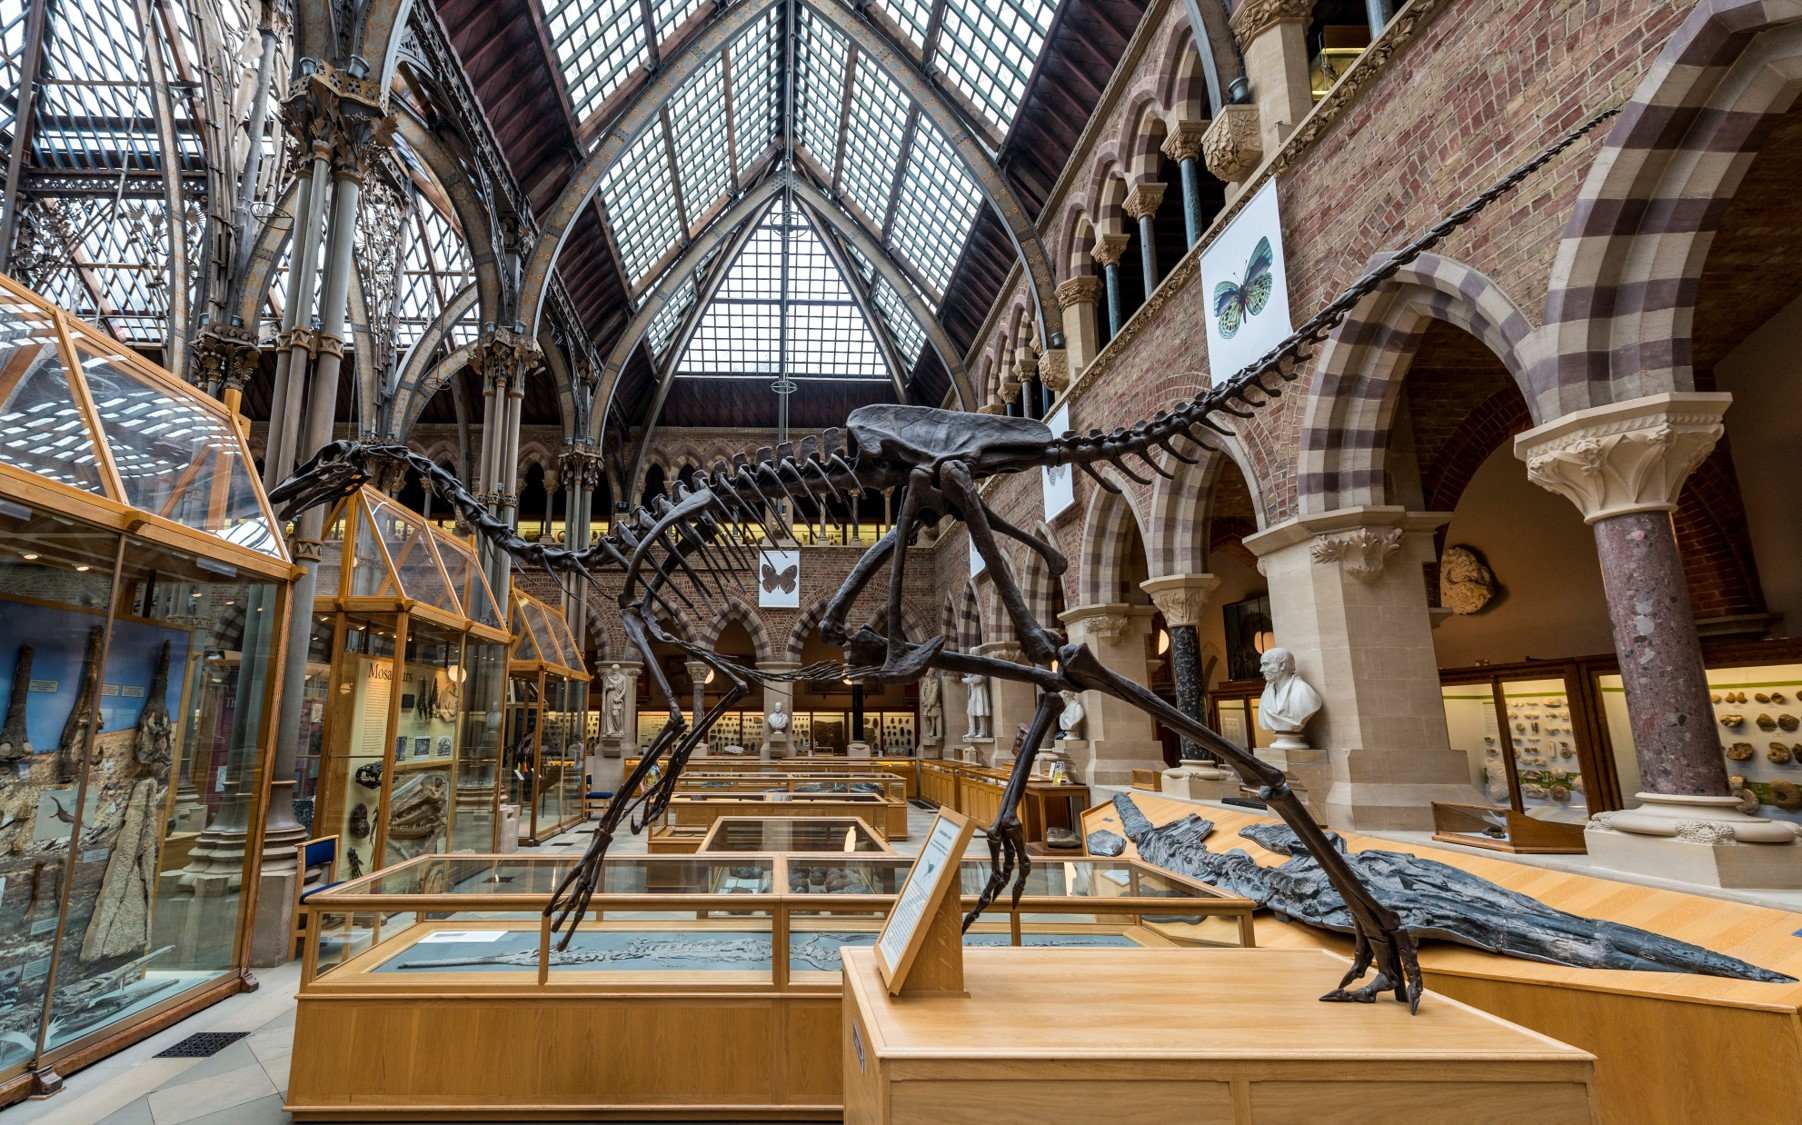 A reconstructed dinosaur skeleton on display in the Oxford Museum of Natural History